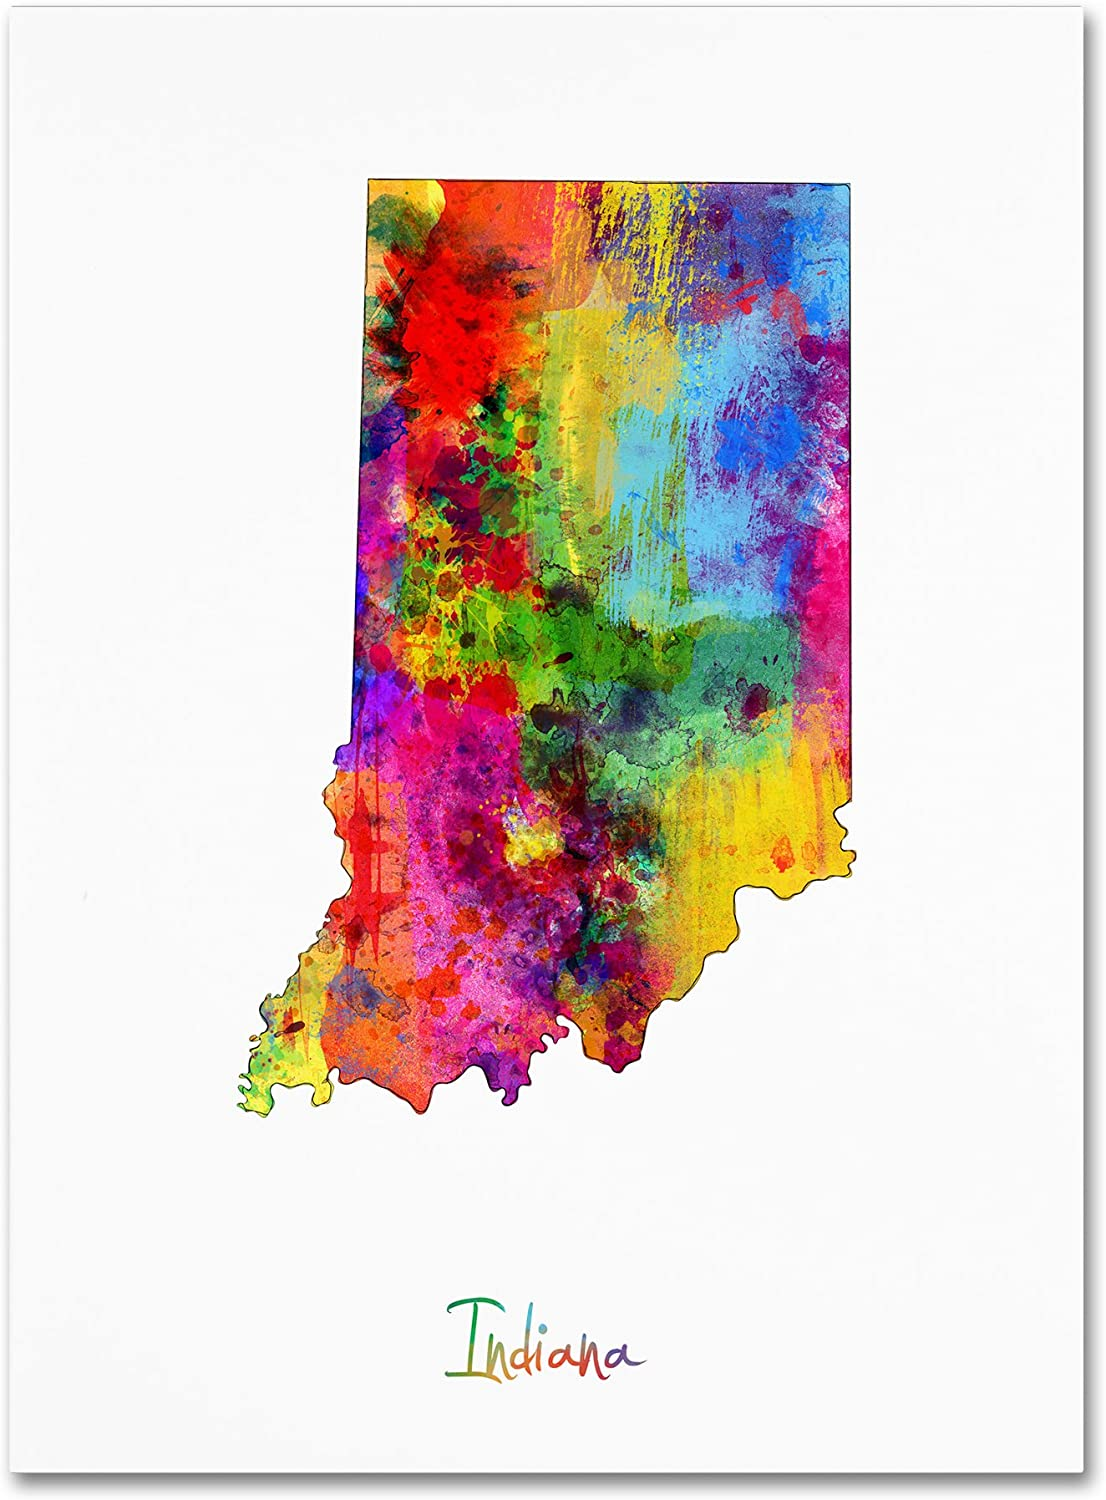 Indiana Reservation Map Ranking TOP9 by Michael Tompsett Canvas 14x19-Inch Art Wall